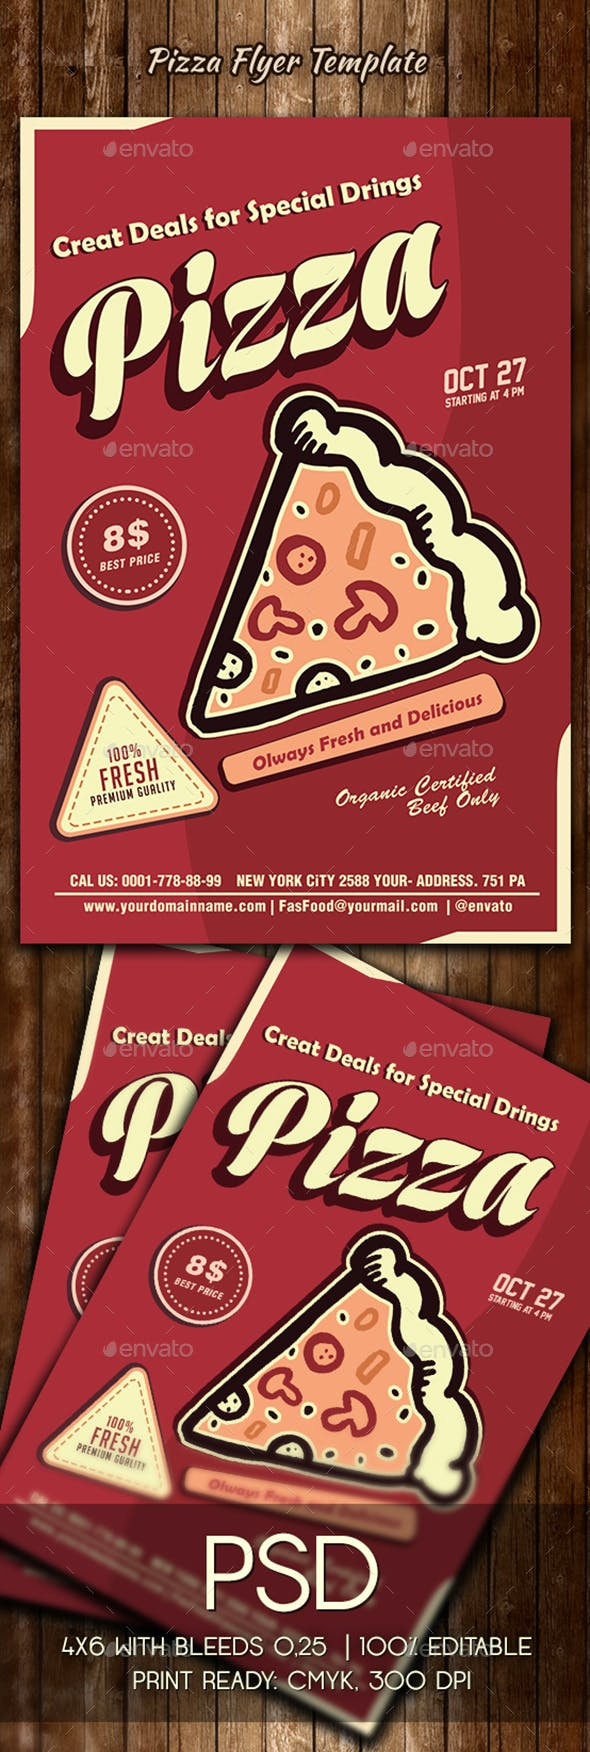 pizza flyer template by colorfuldesign graphicriver